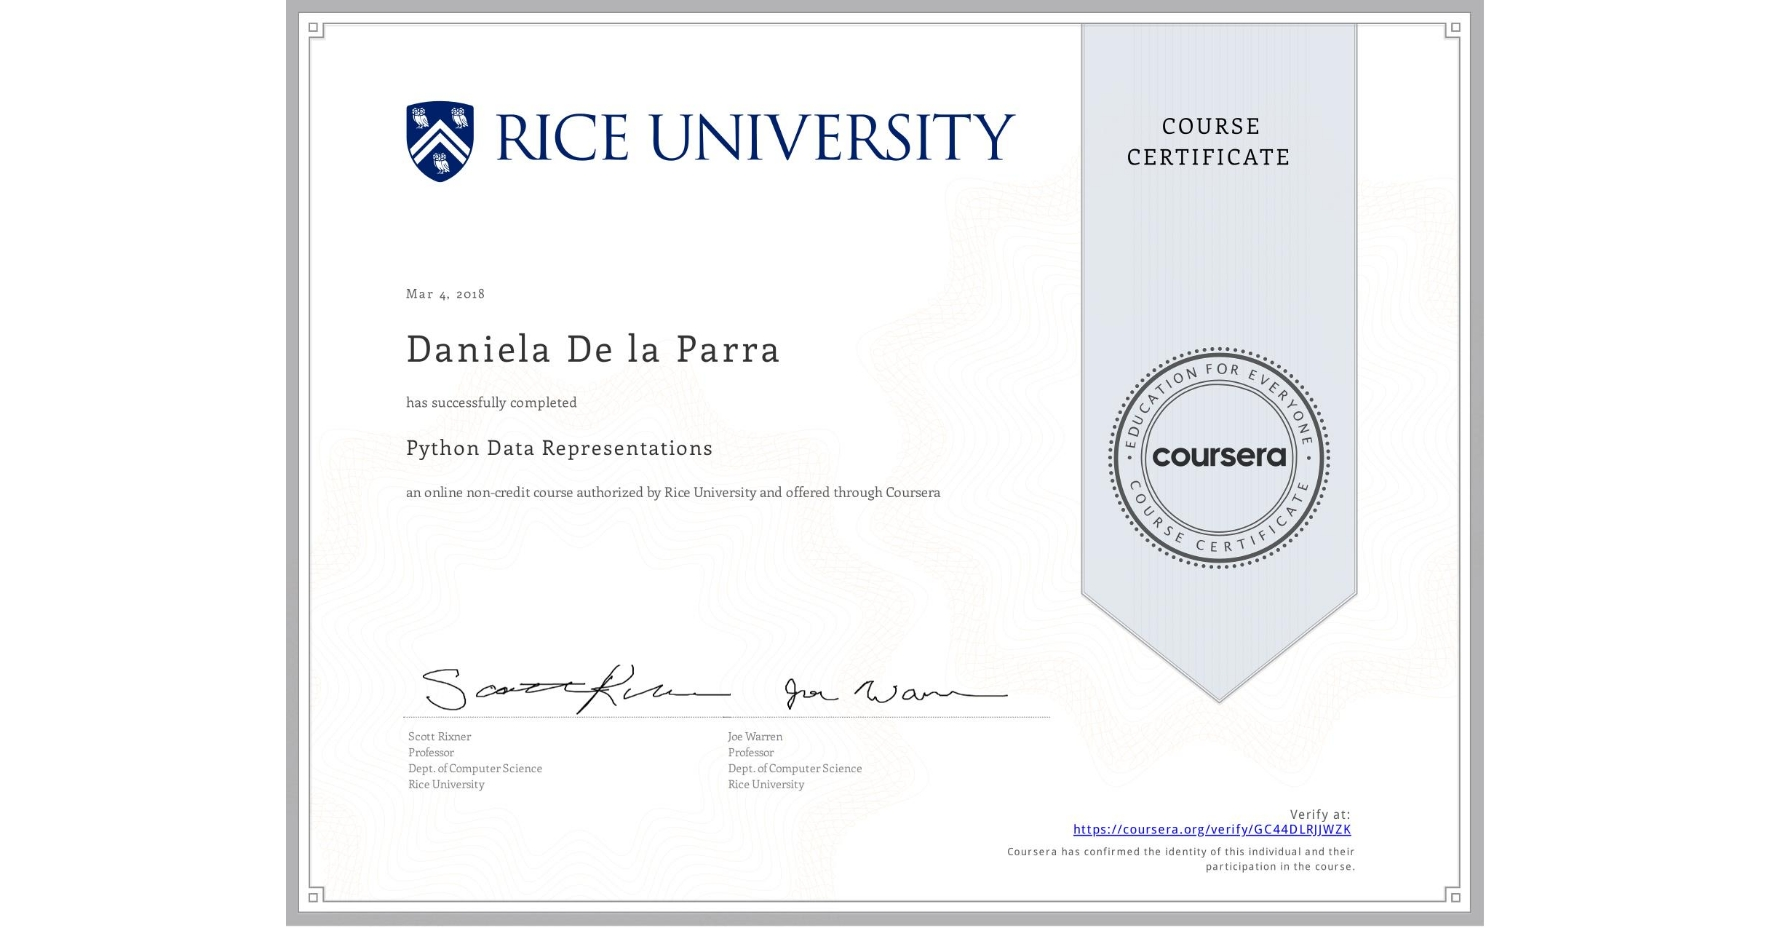 View certificate for Daniela De la Parra, Python Data Representations, an online non-credit course authorized by Rice University and offered through Coursera